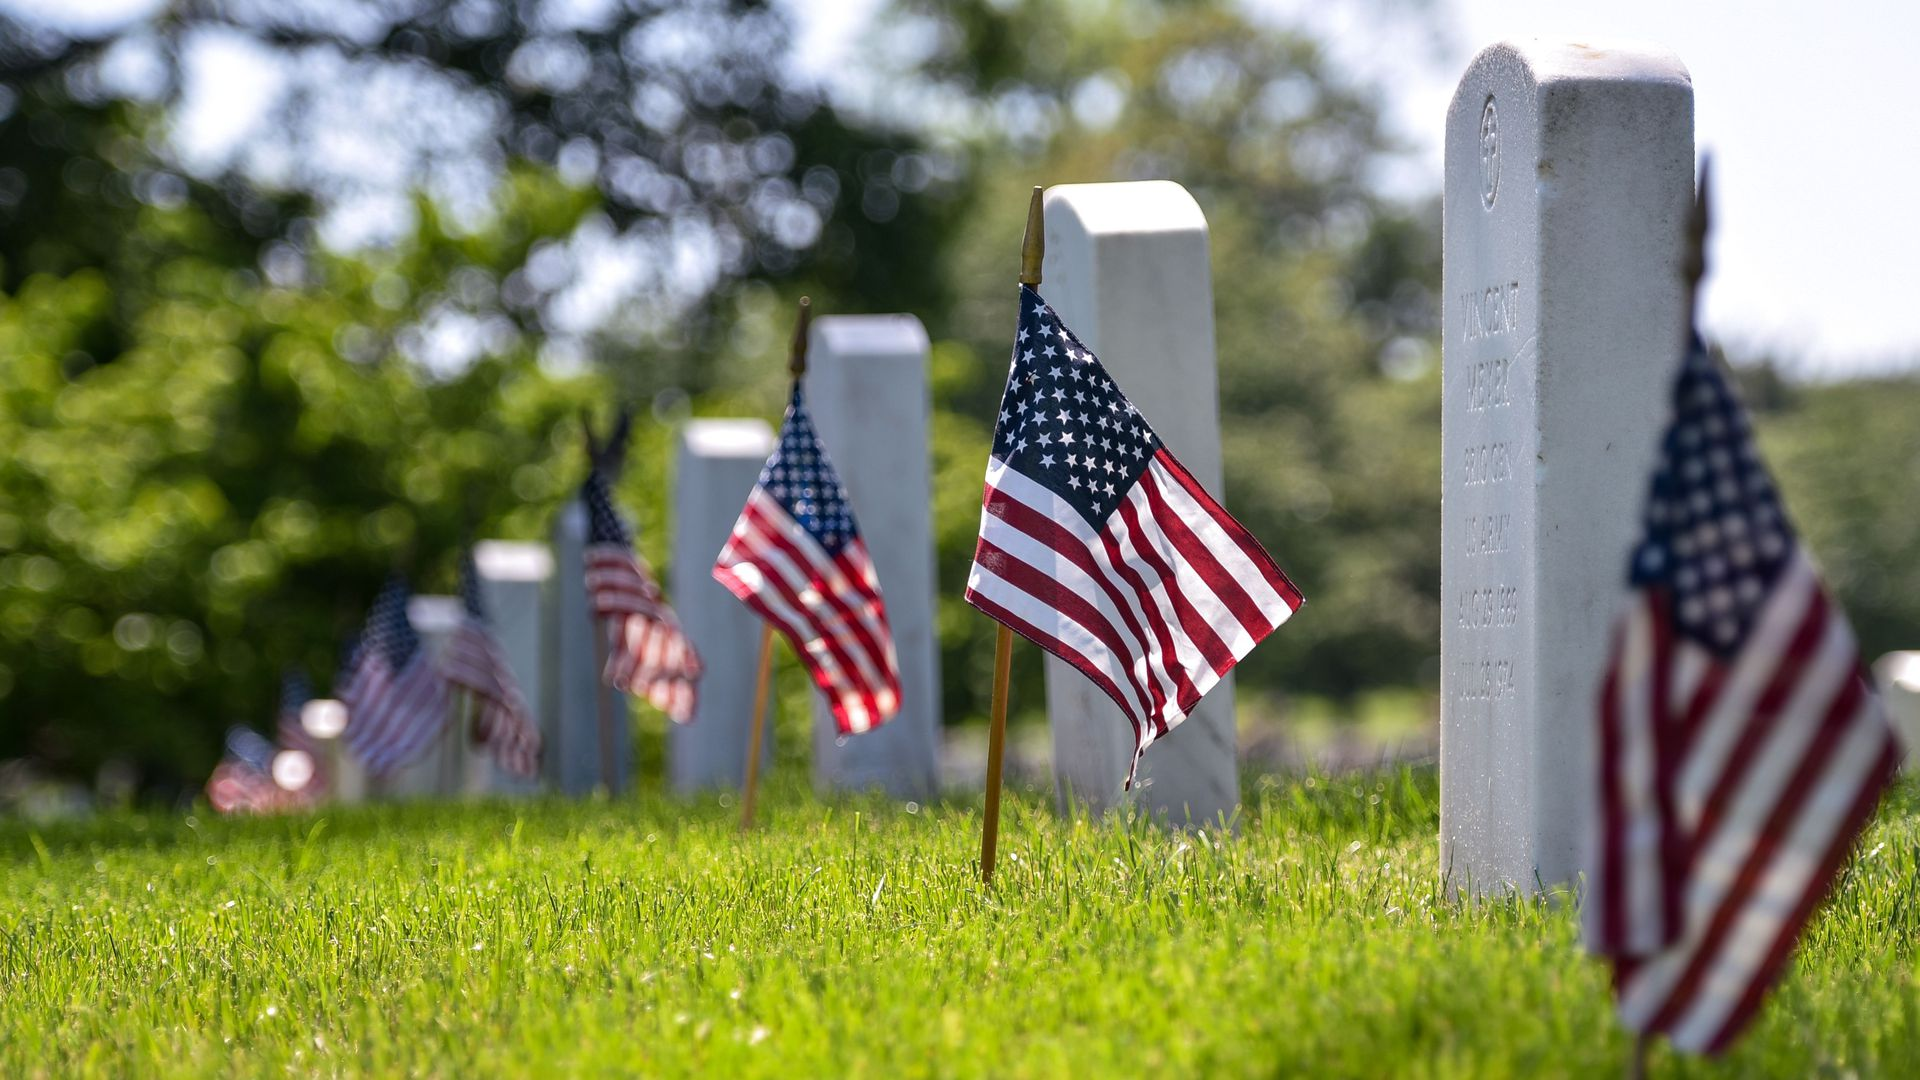 Flags in front of headstones at Arlington National Cemetery.